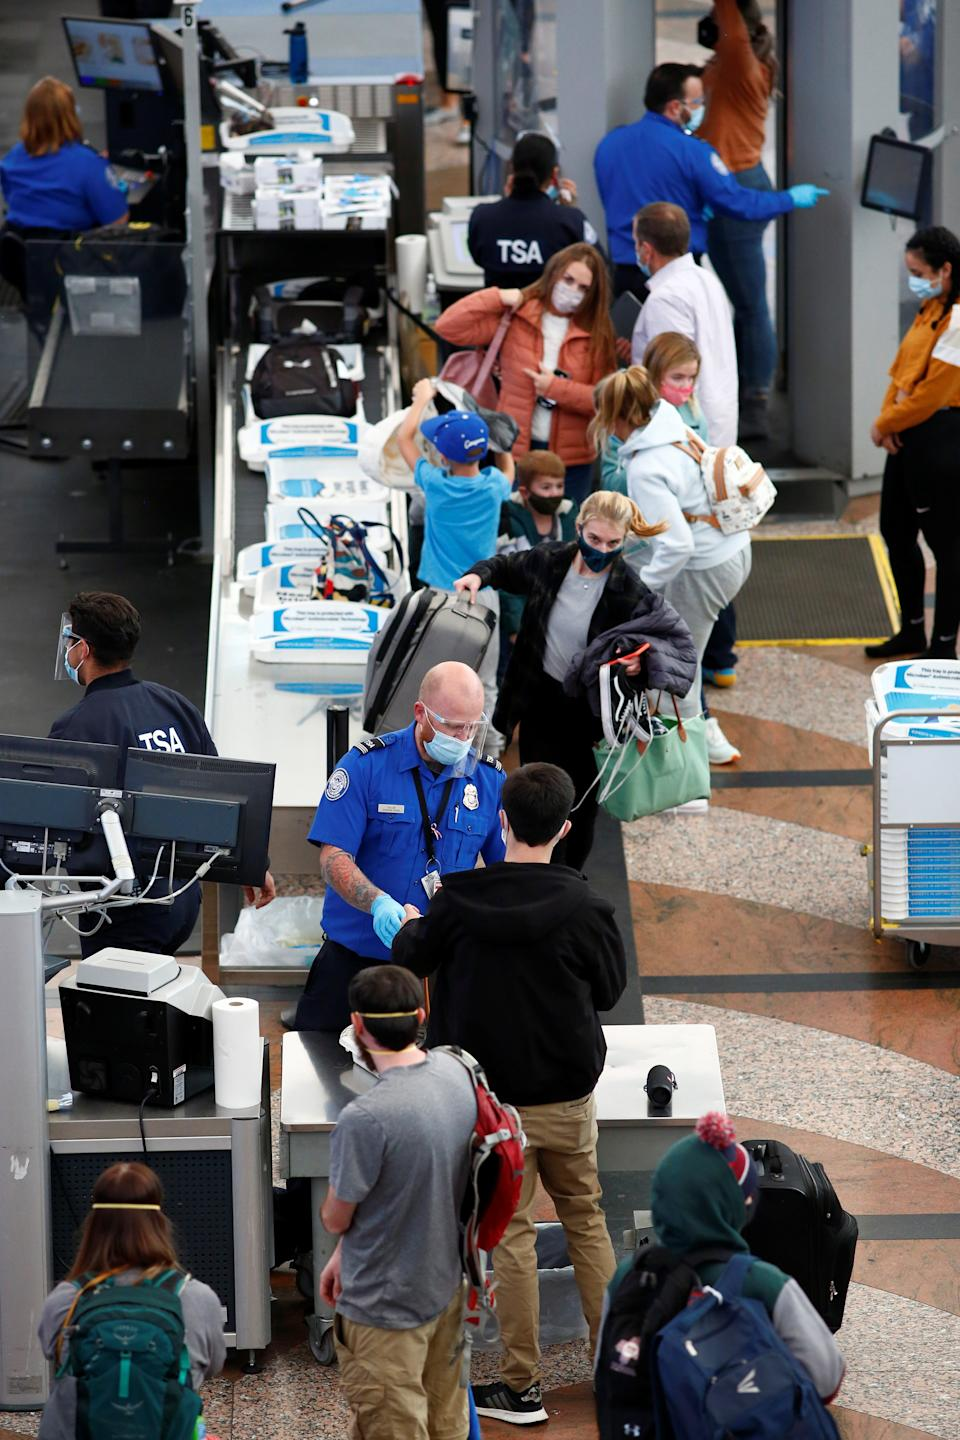 Travelers wearing protective face masks to prevent the spread of the coronavirus disease (COVID-19) go through security before boarding a flight at the airport in Denver, Colorado, U.S., November 24, 2020.